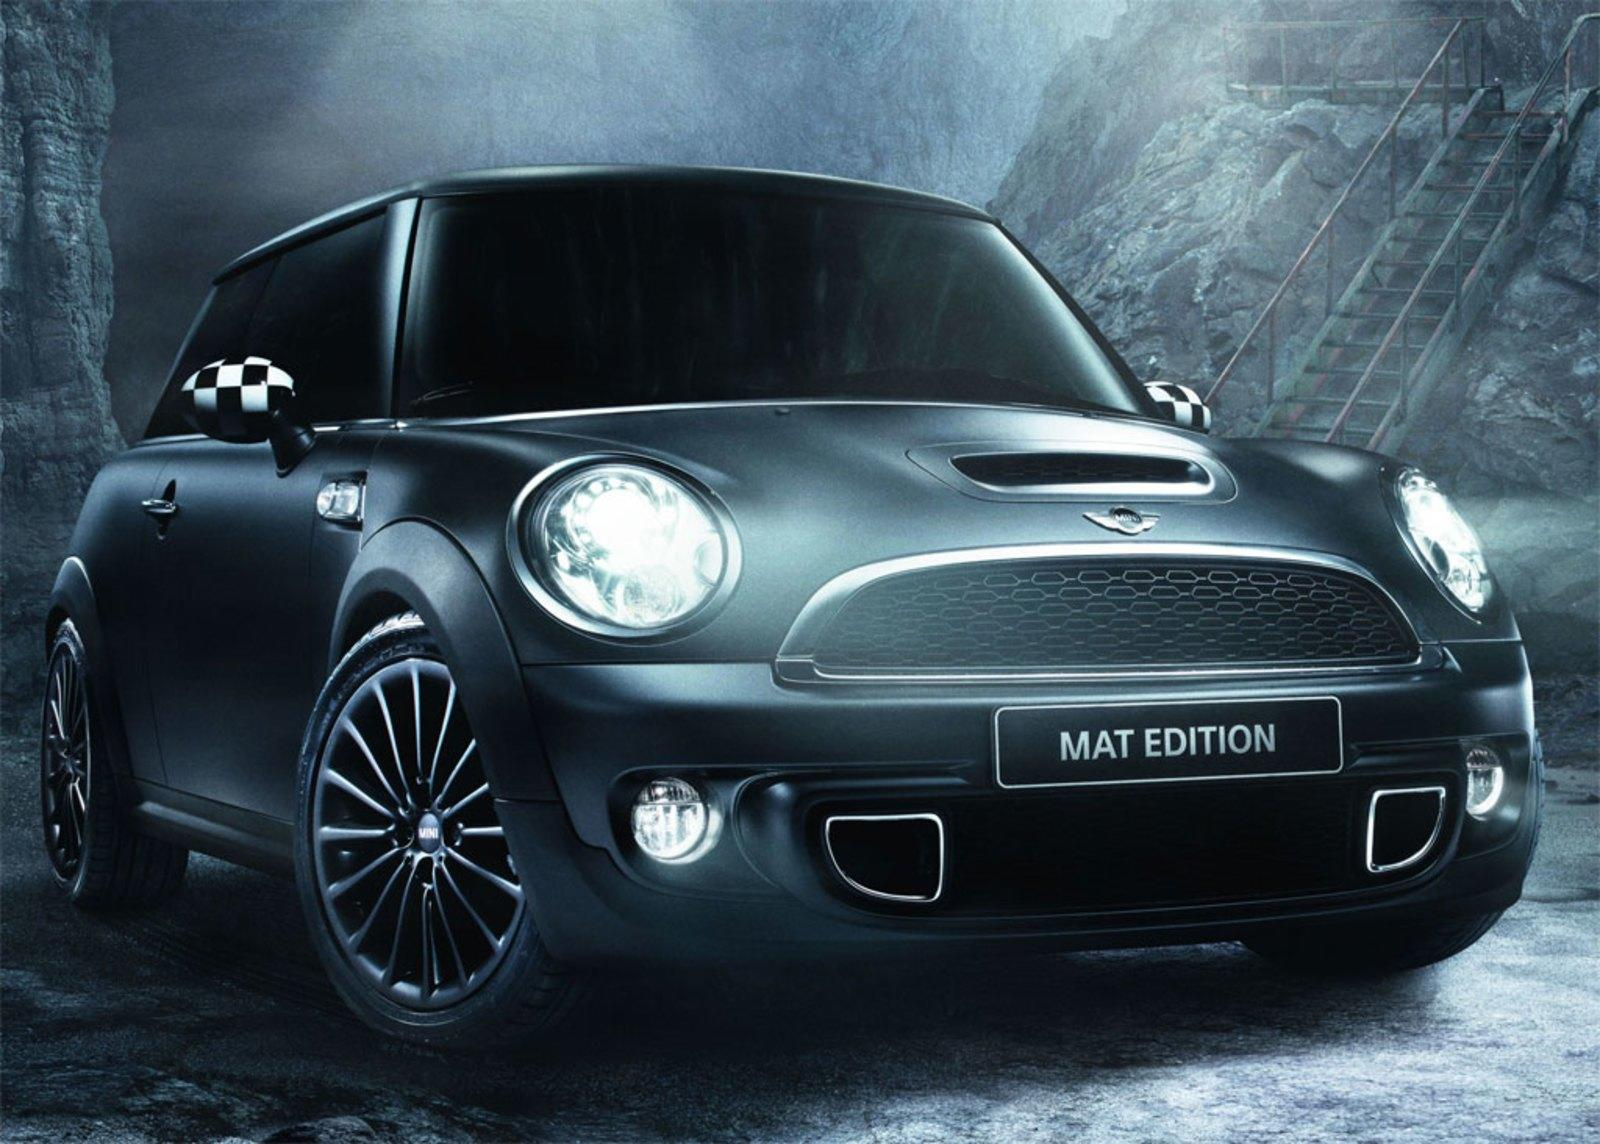 2011 mini cooper mat edition review top speed. Black Bedroom Furniture Sets. Home Design Ideas